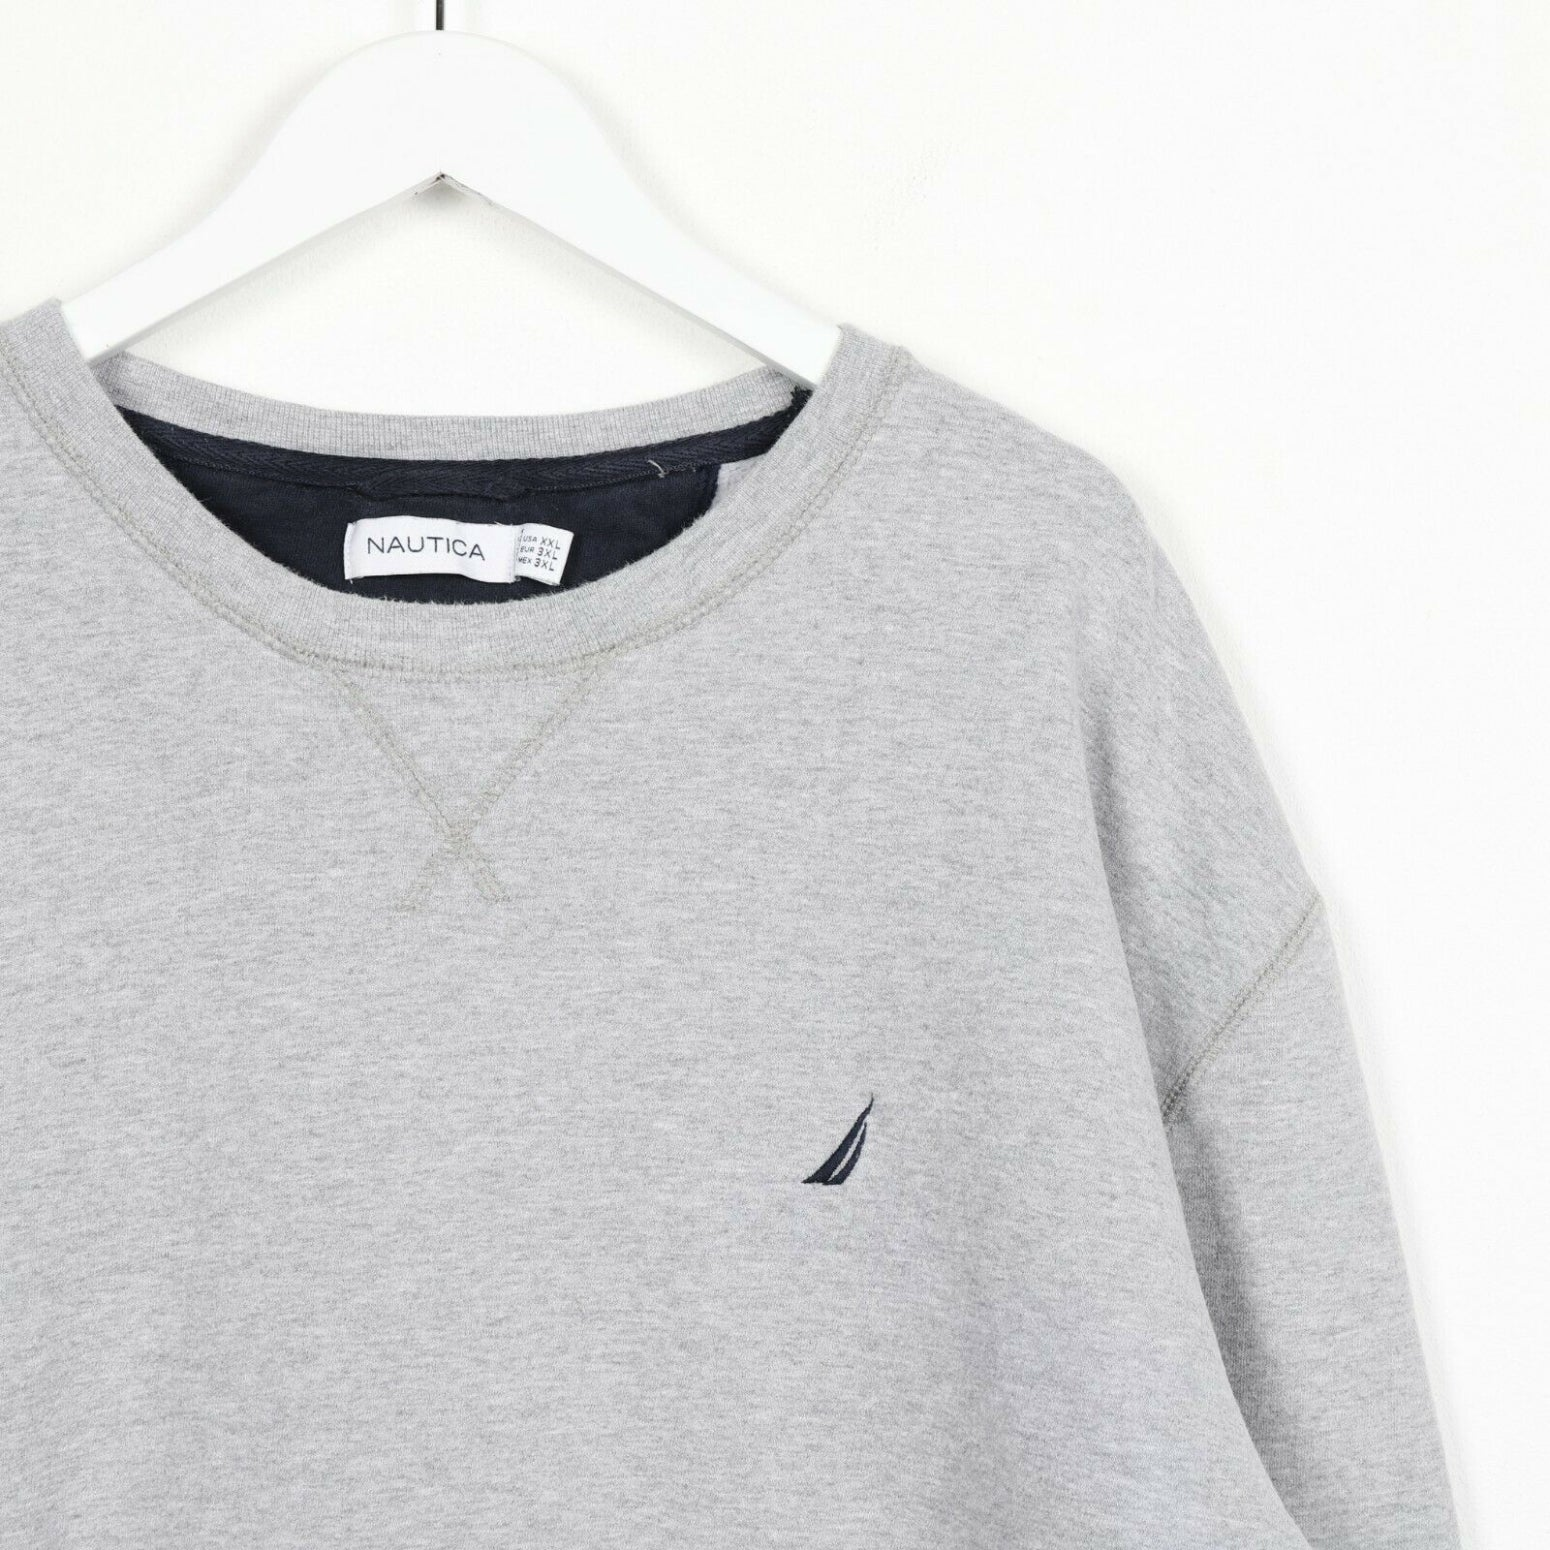 Vintage NAUTICA Small Logo Sweatshirt Jumper Grey | 2XL